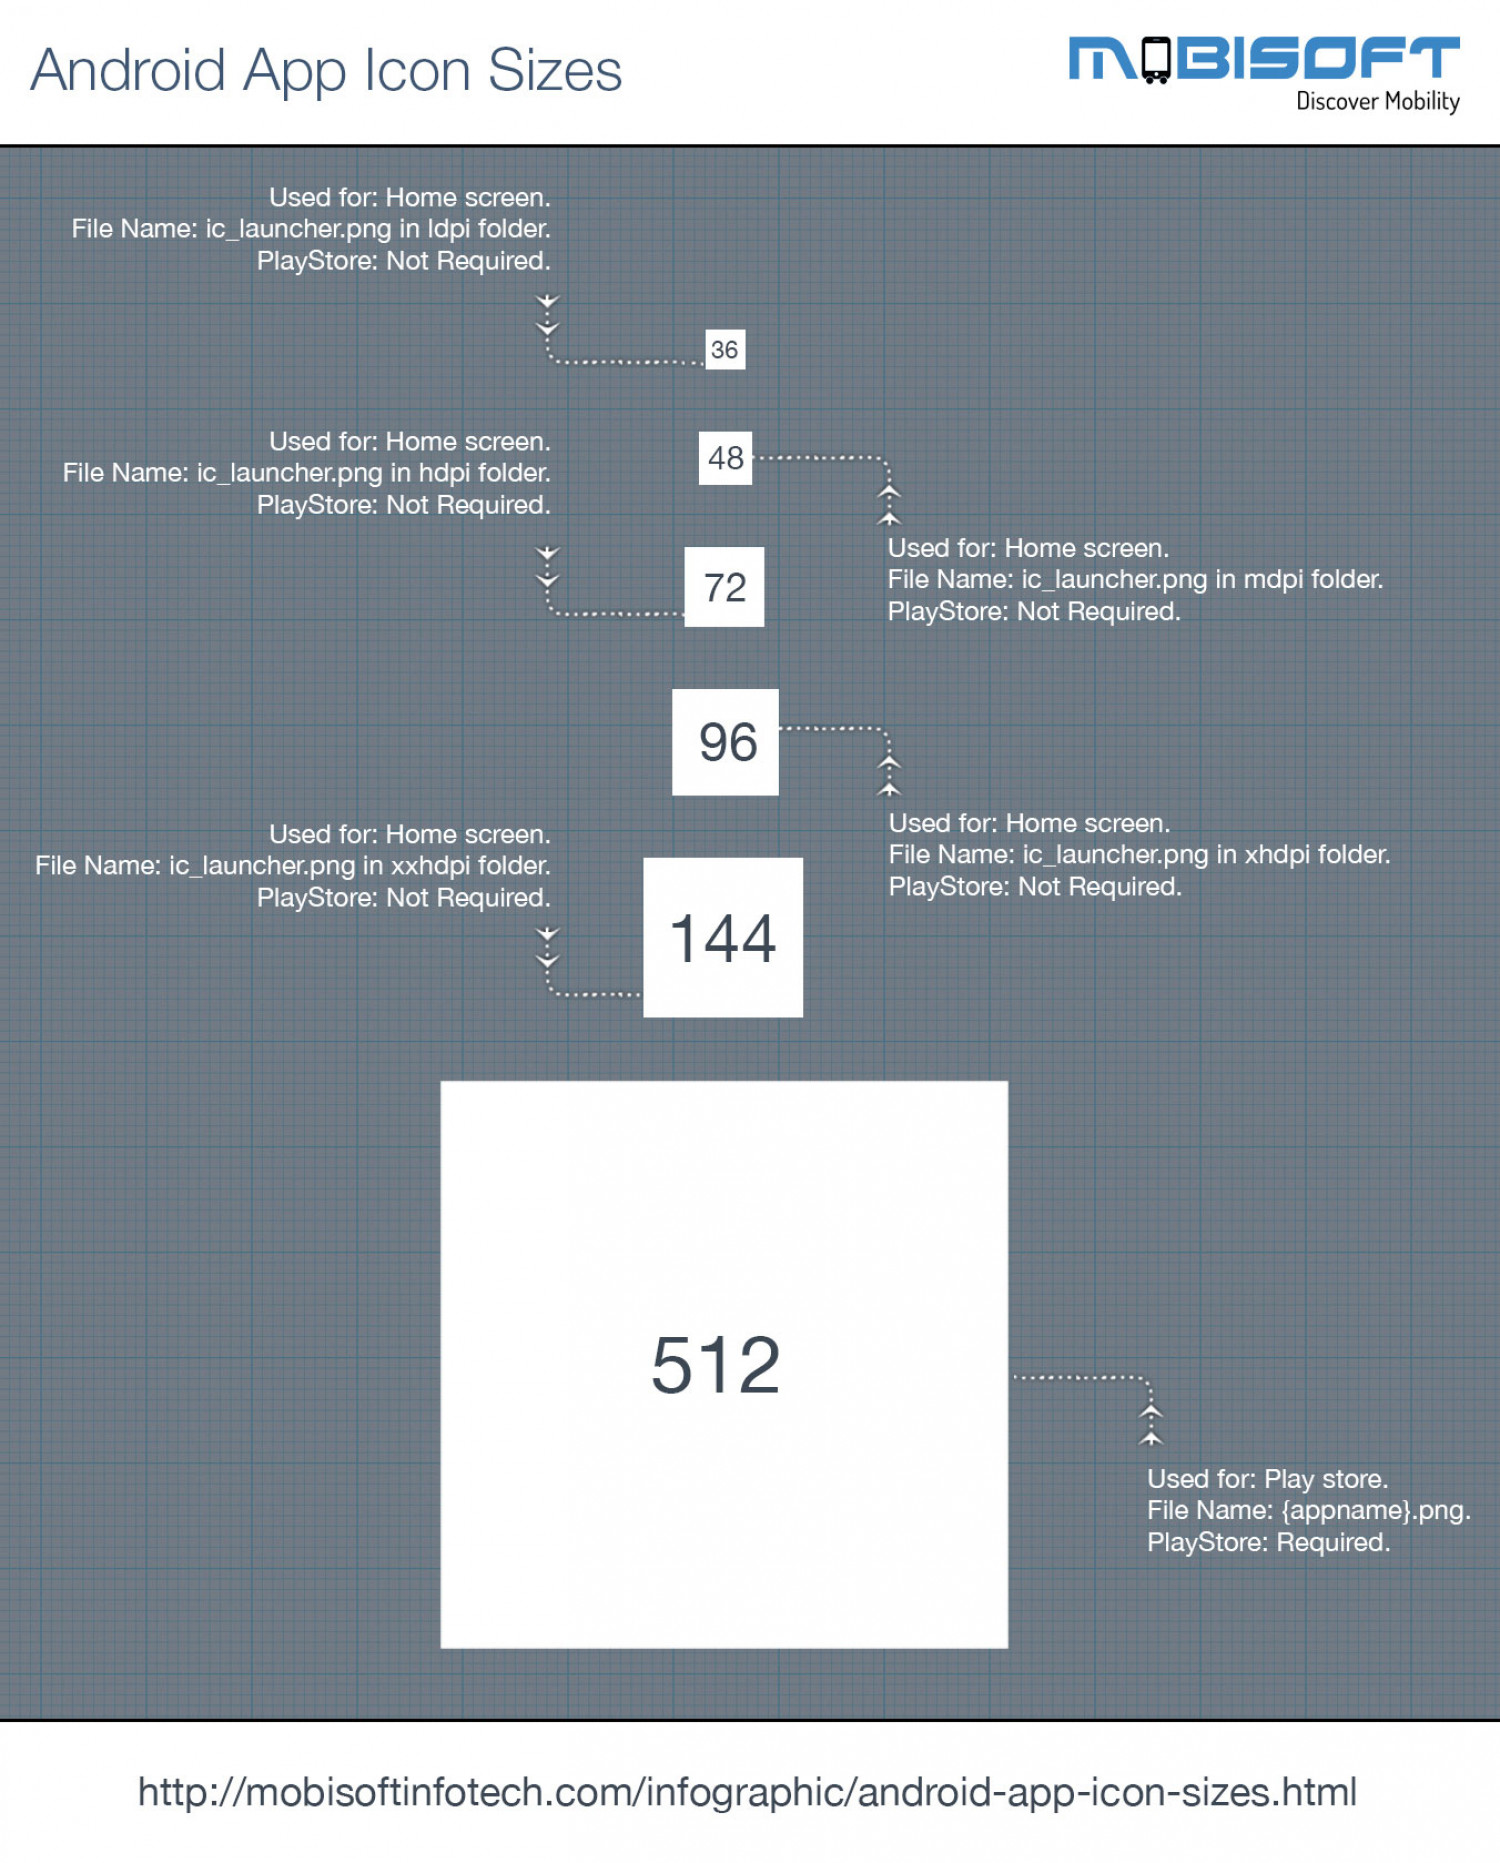 Android OS App Icon Sizes Infographic